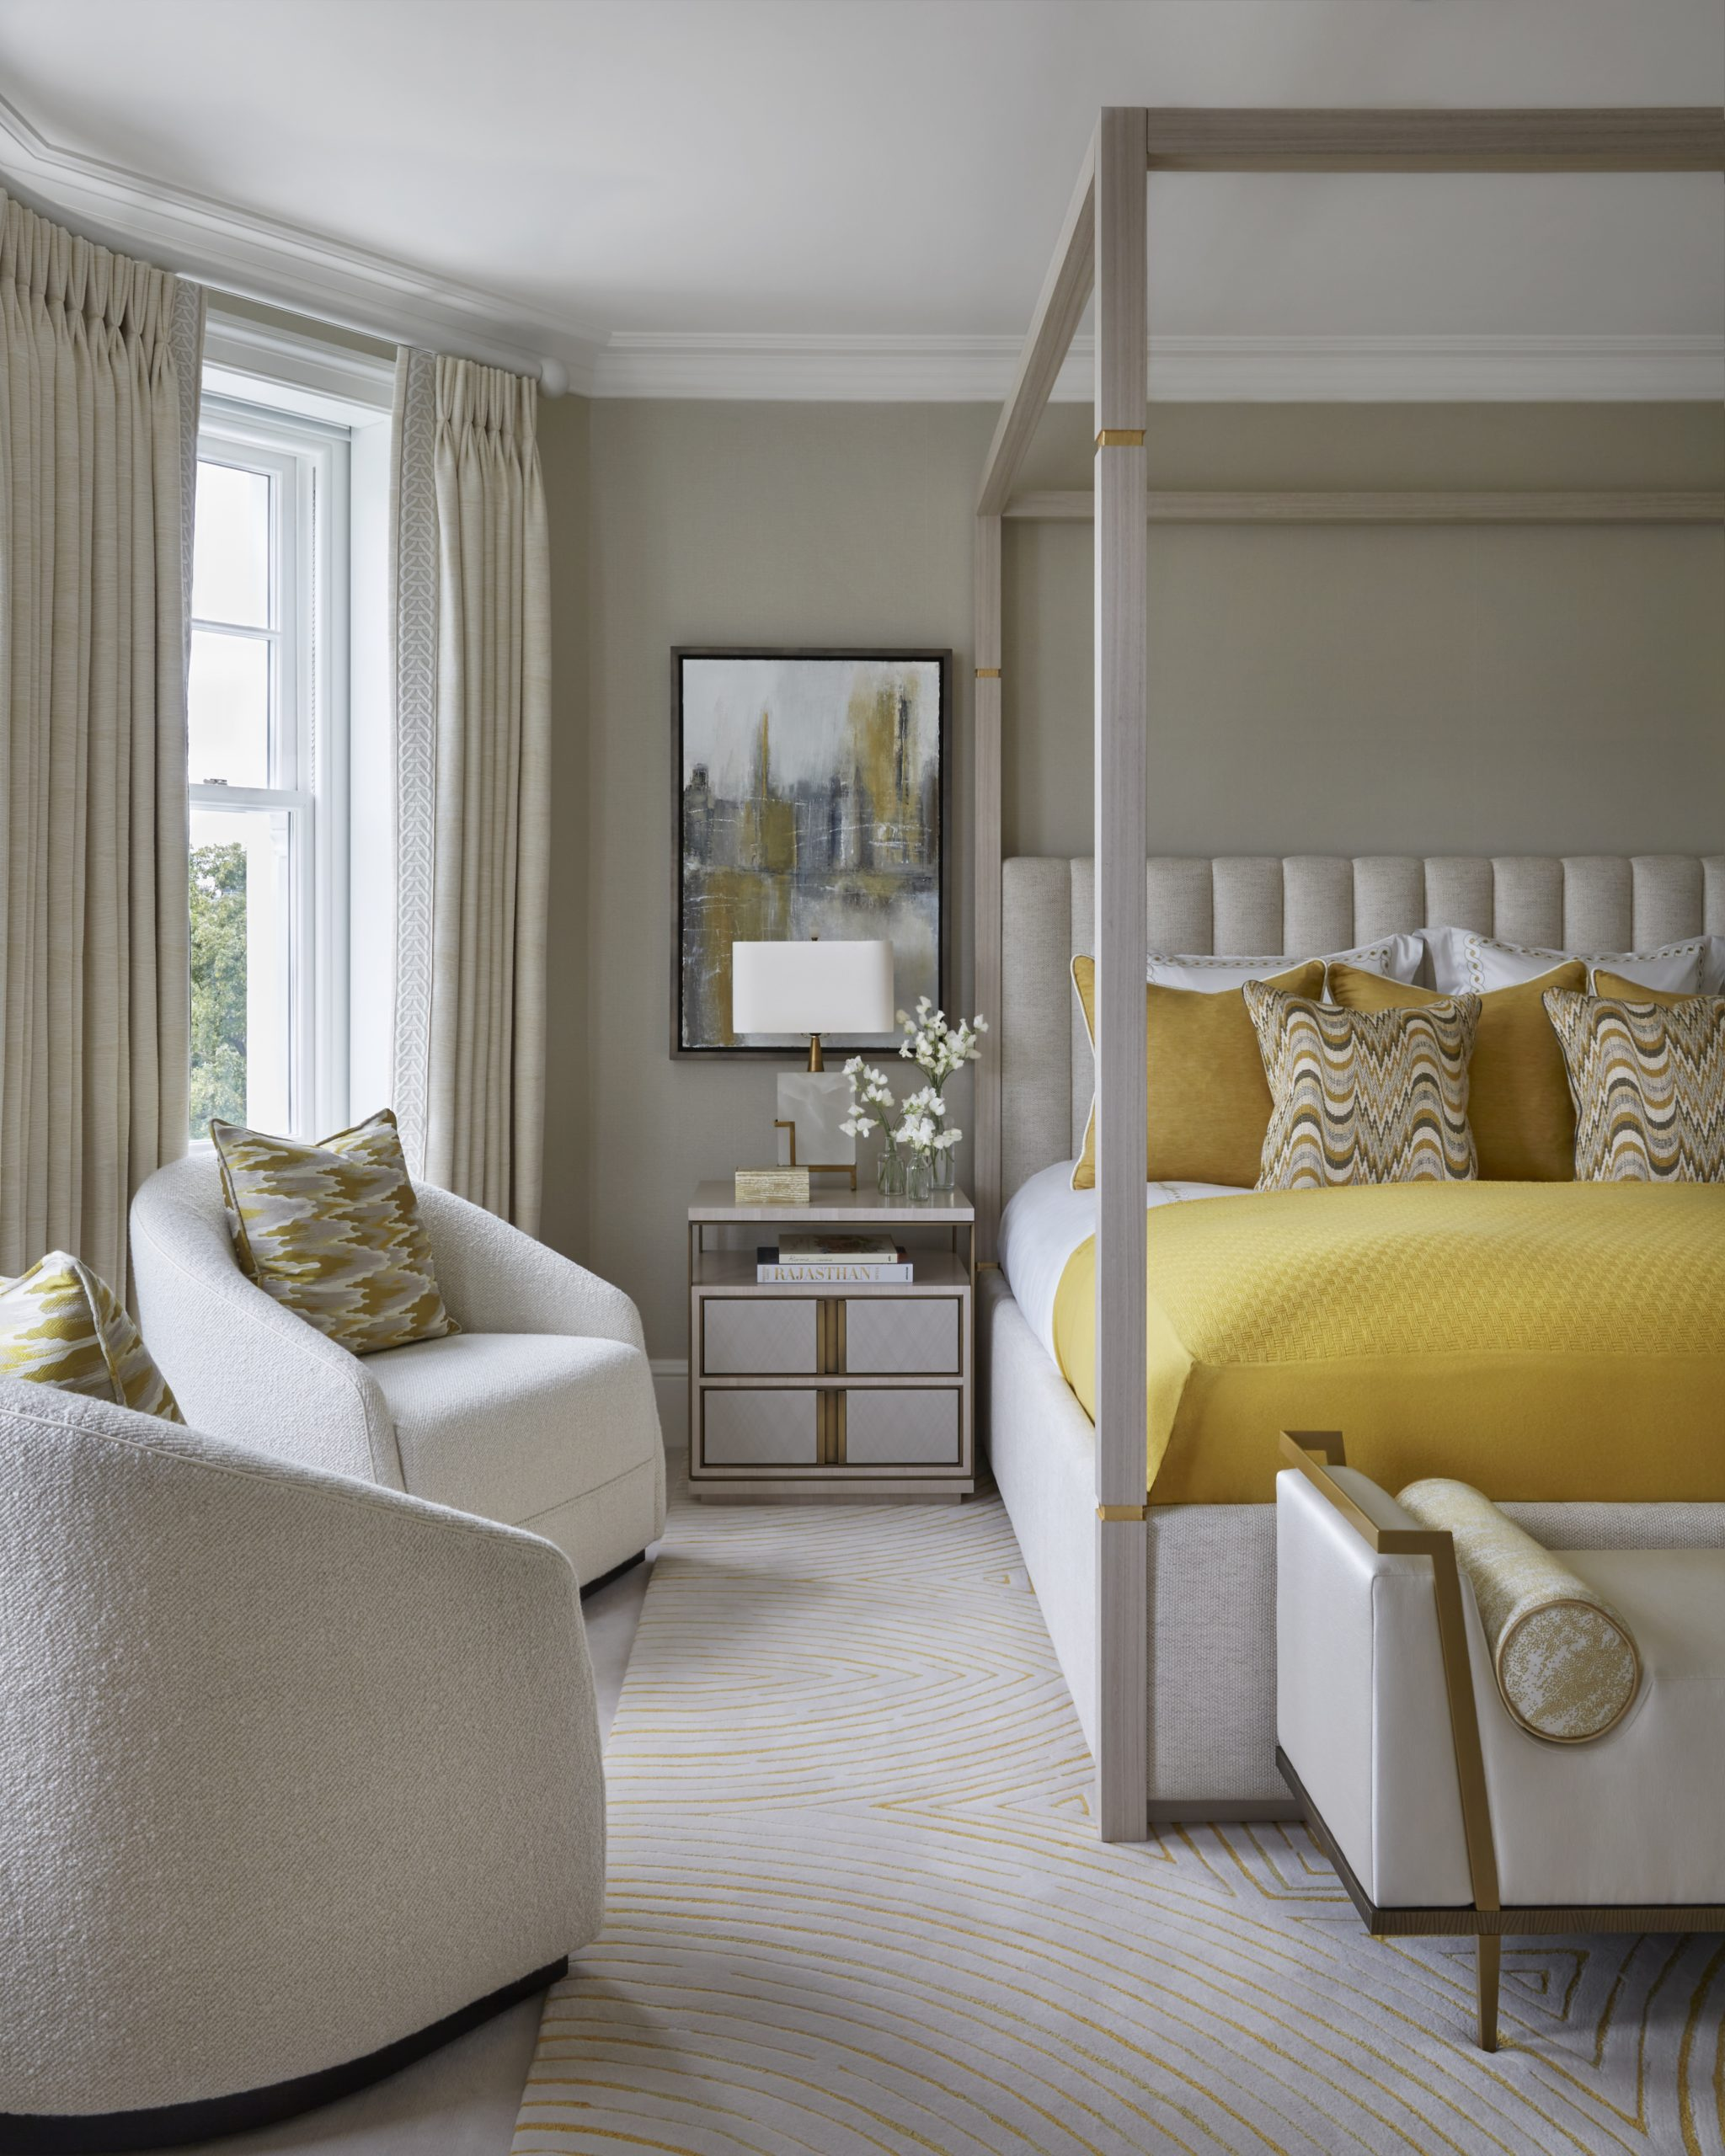 Beautiful use of yellow in this master room designed by top interior designer Katharine Pooley